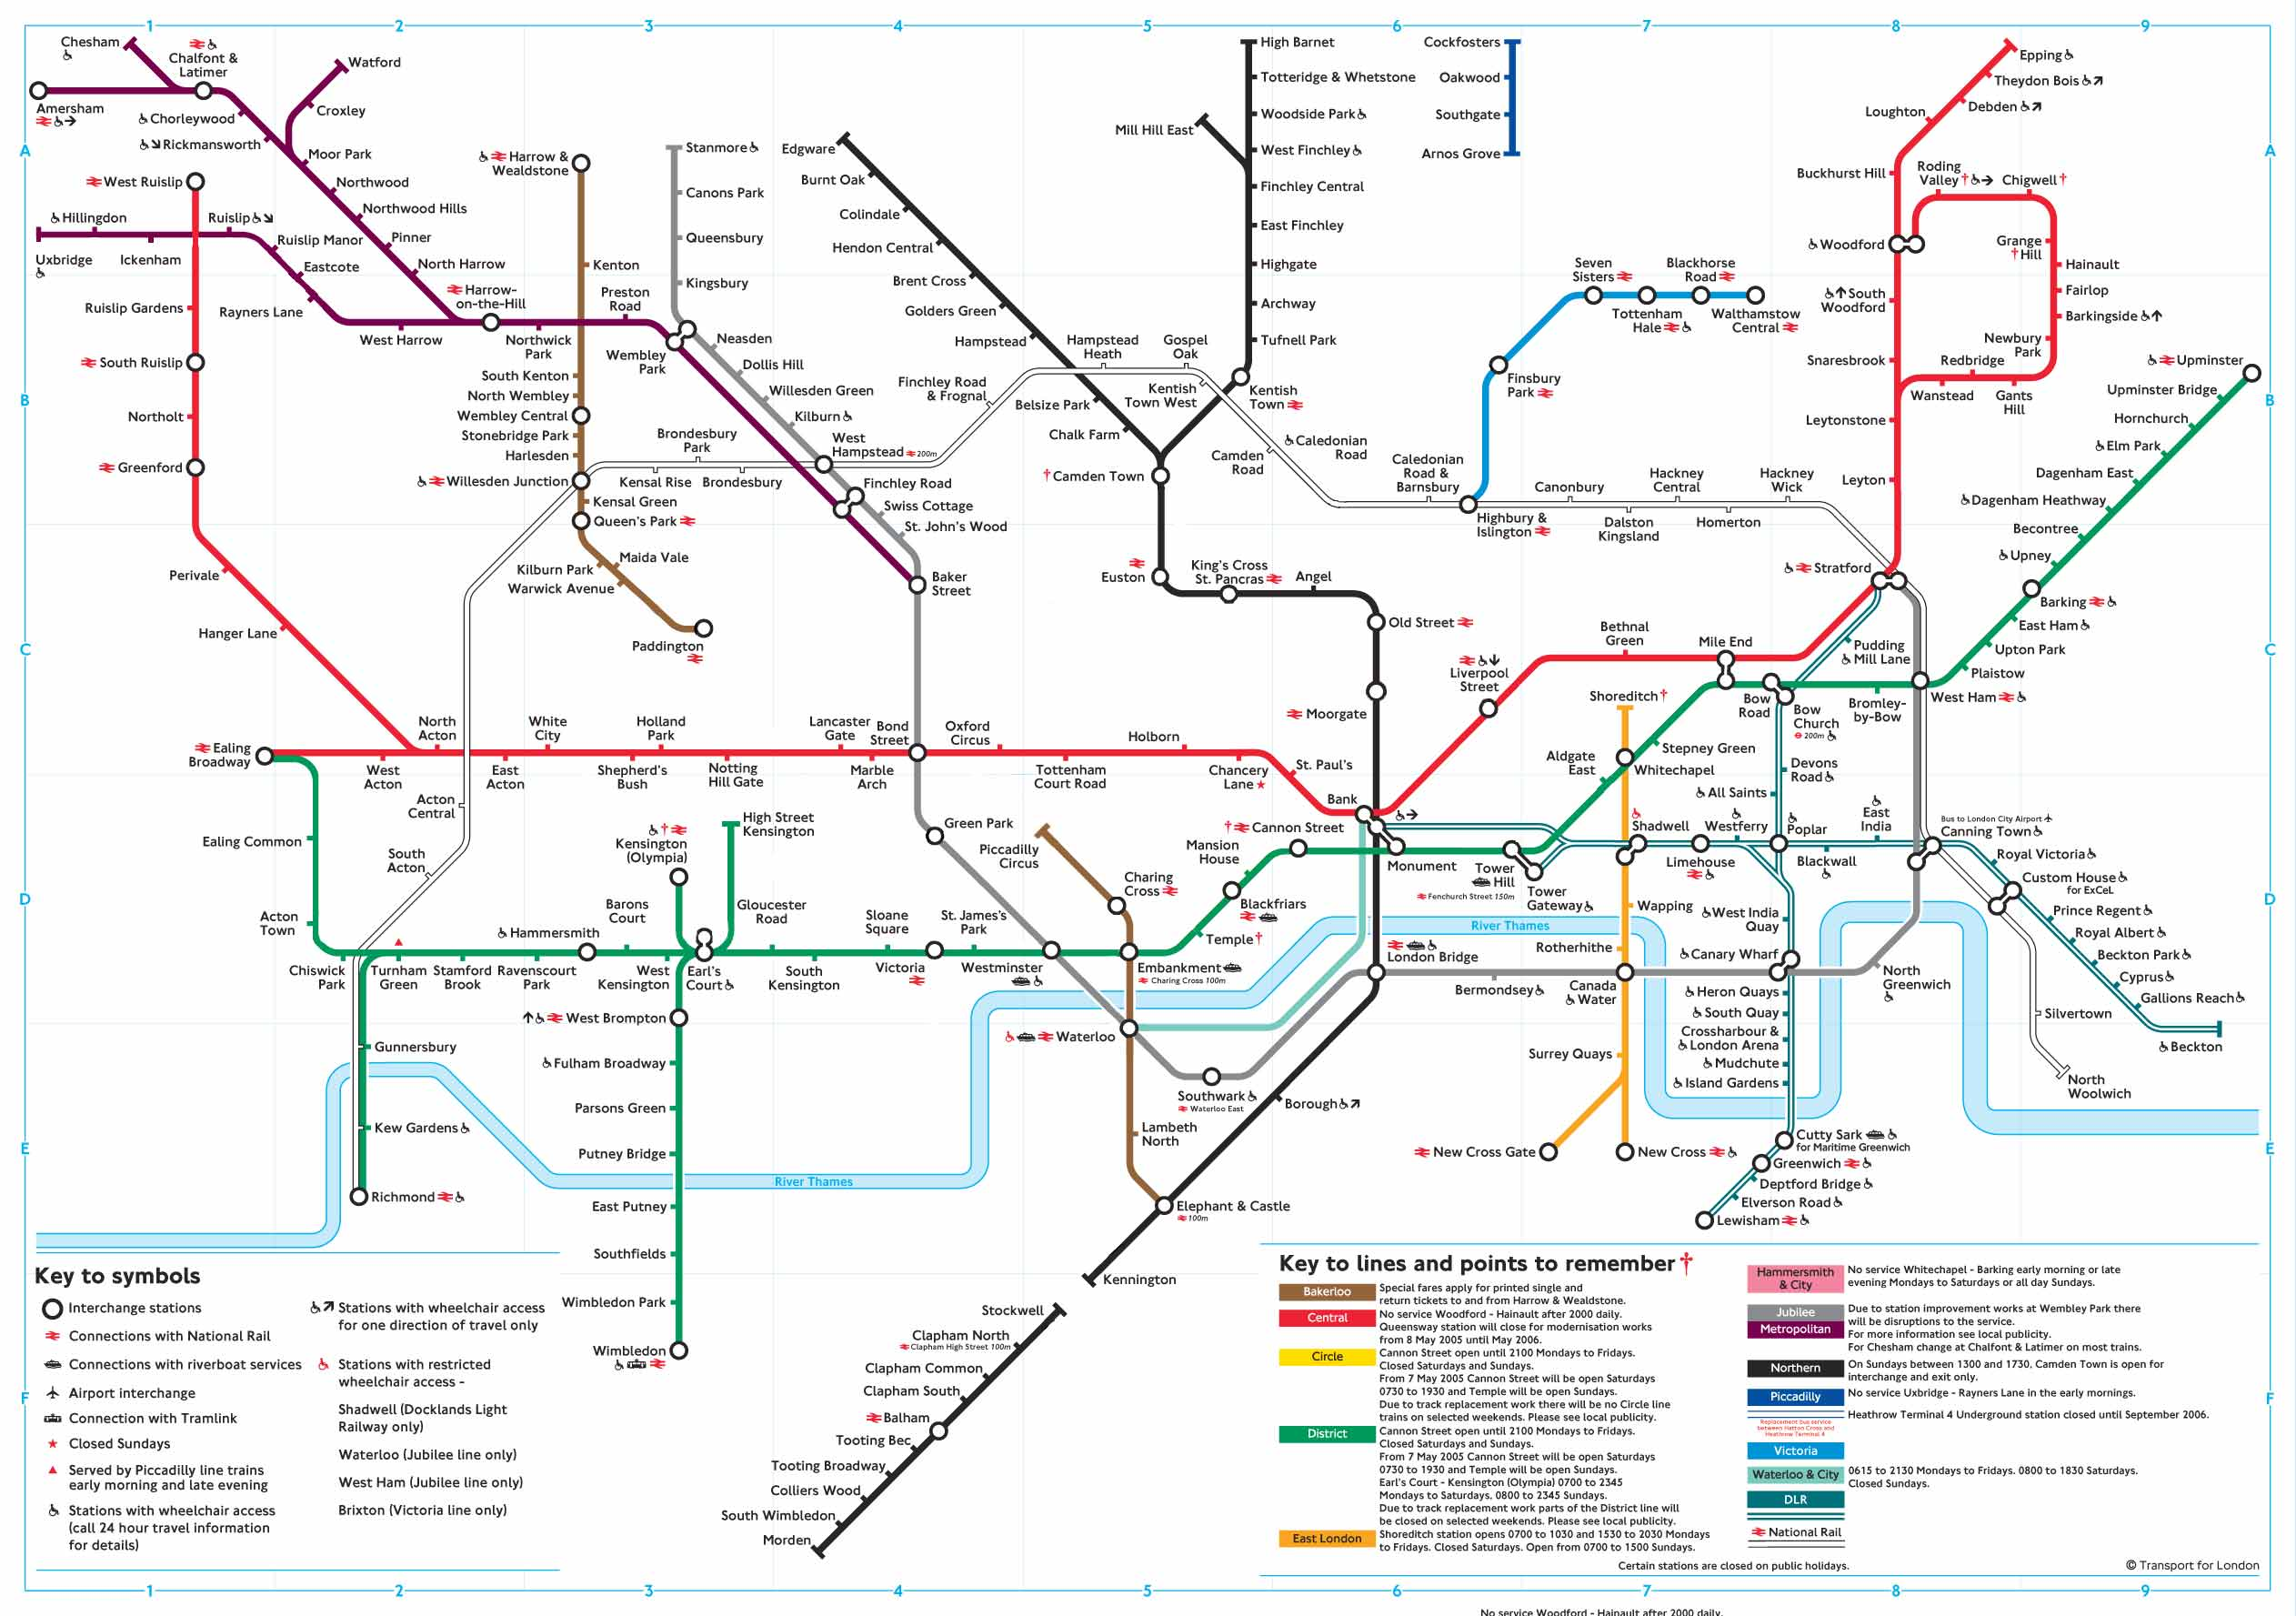 london underground map after the 7th july attacks and failed bombing attempt on the 21st july